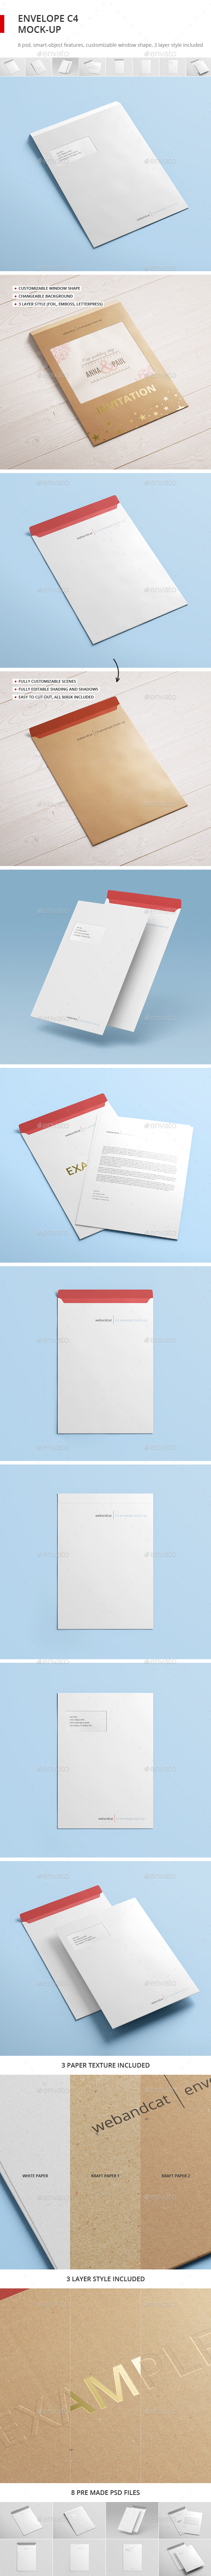 Envelope C4 Mock-up (Stationery)